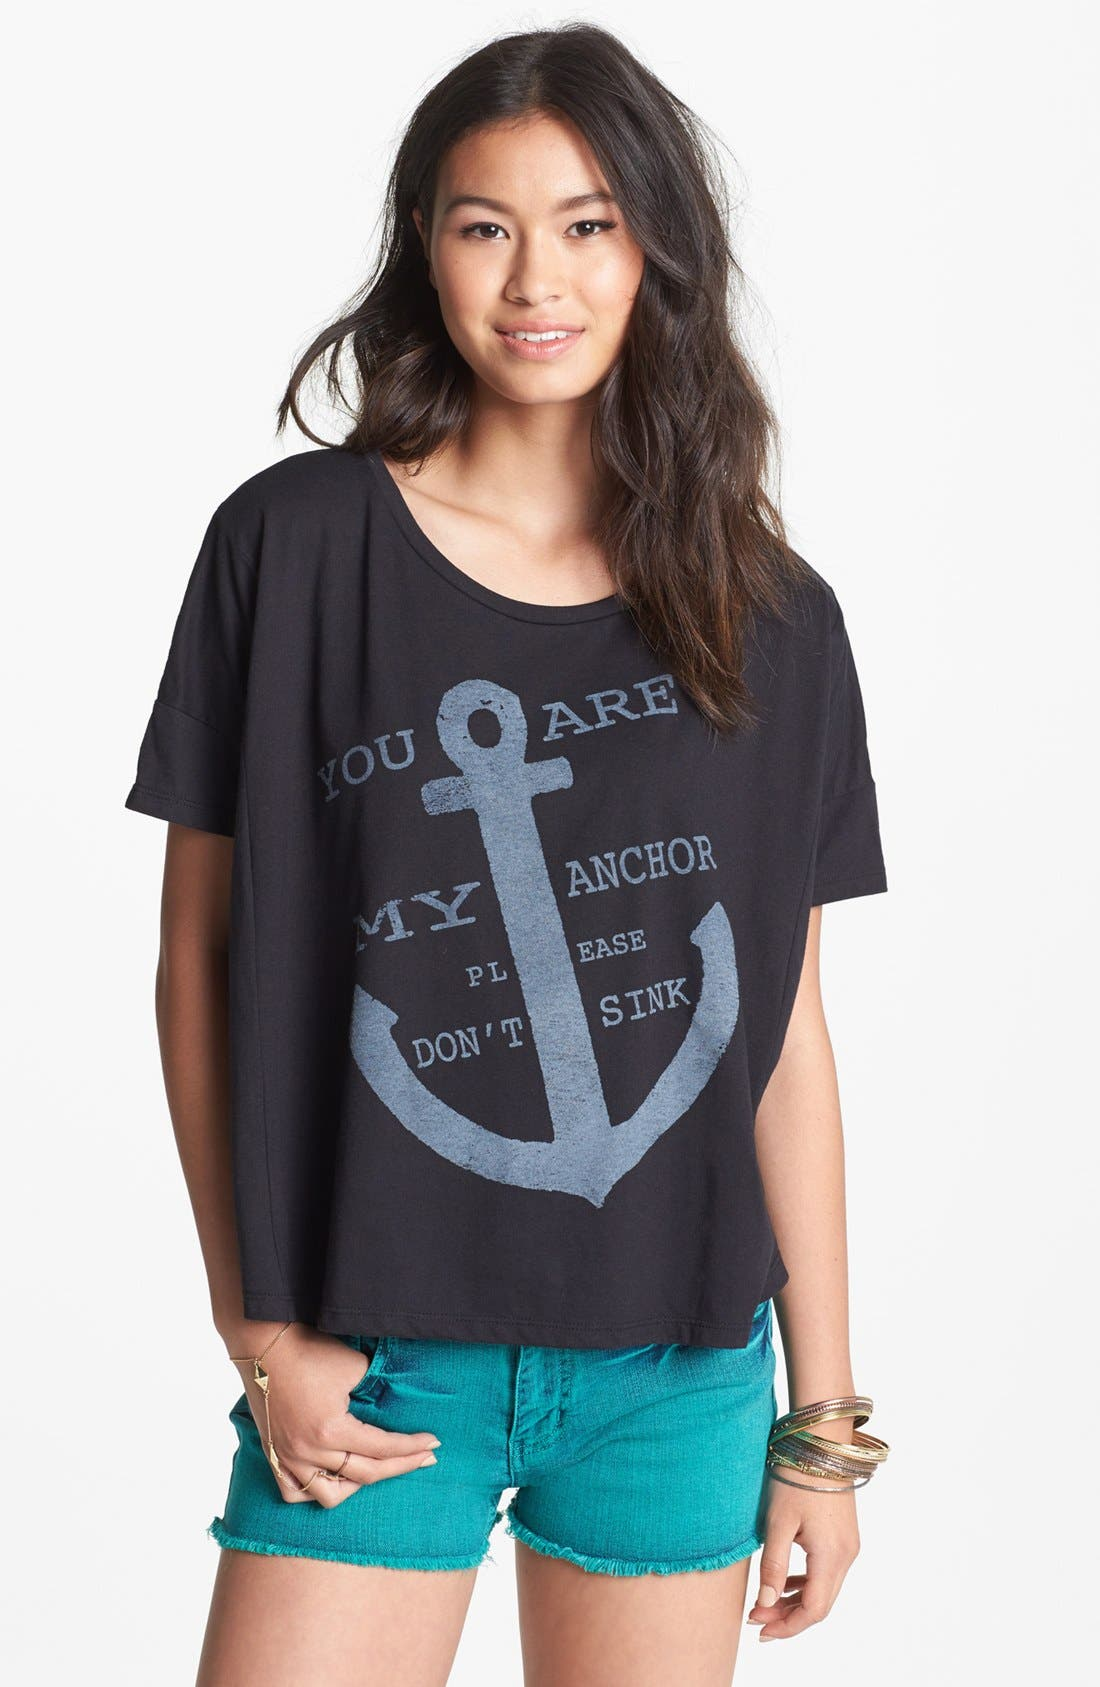 Alternate Image 1 Selected - Malibu Native 'Anchor' Graphic Tee (Juniors)